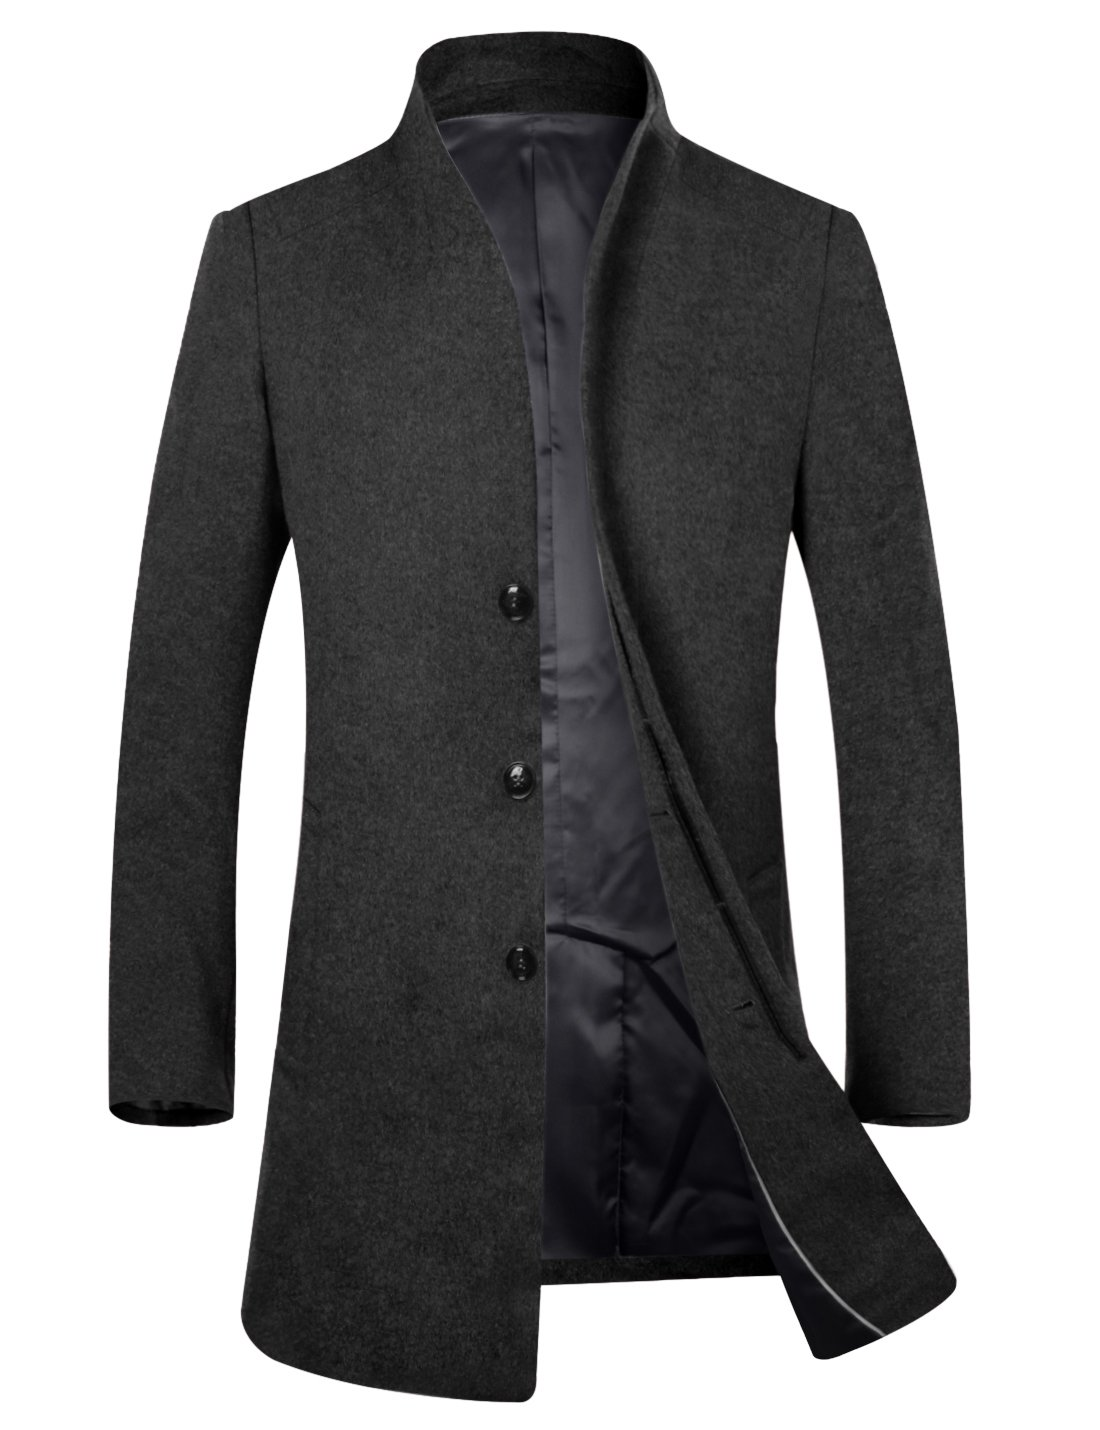 APTRO Men's Wool French Front Slim Fit Long Business Coat Black XL by APTRO